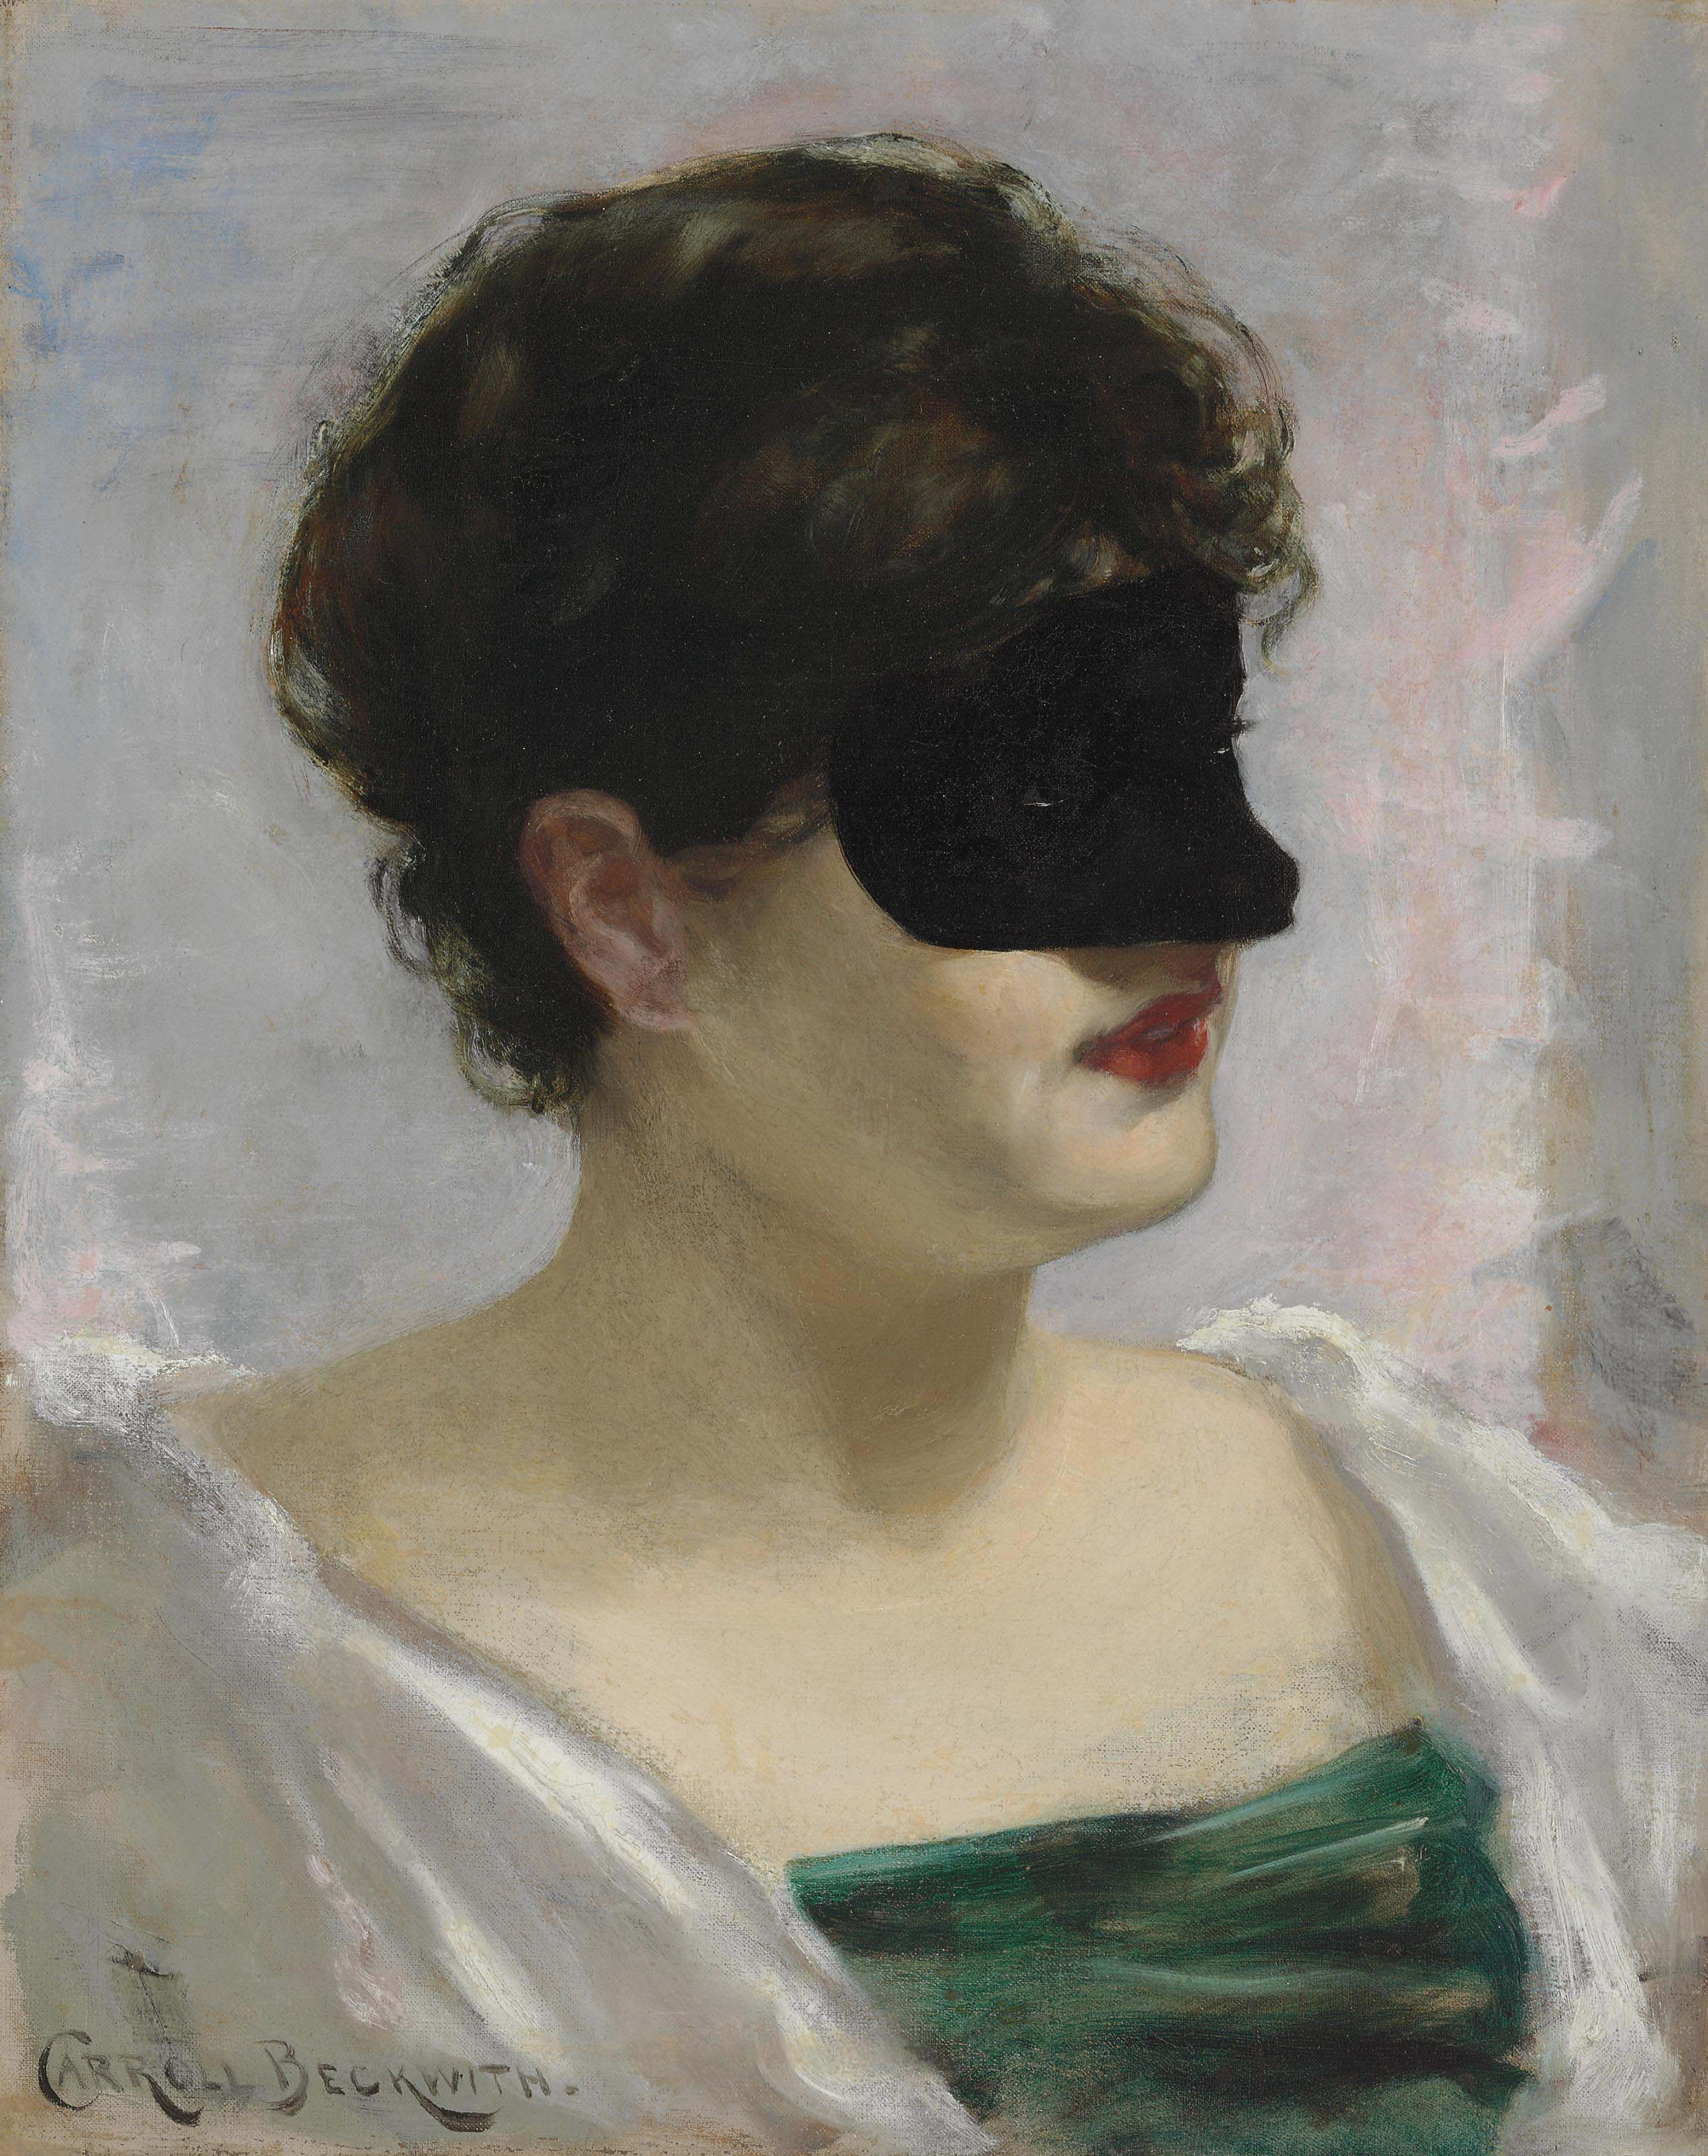 Lady with a Black Mask